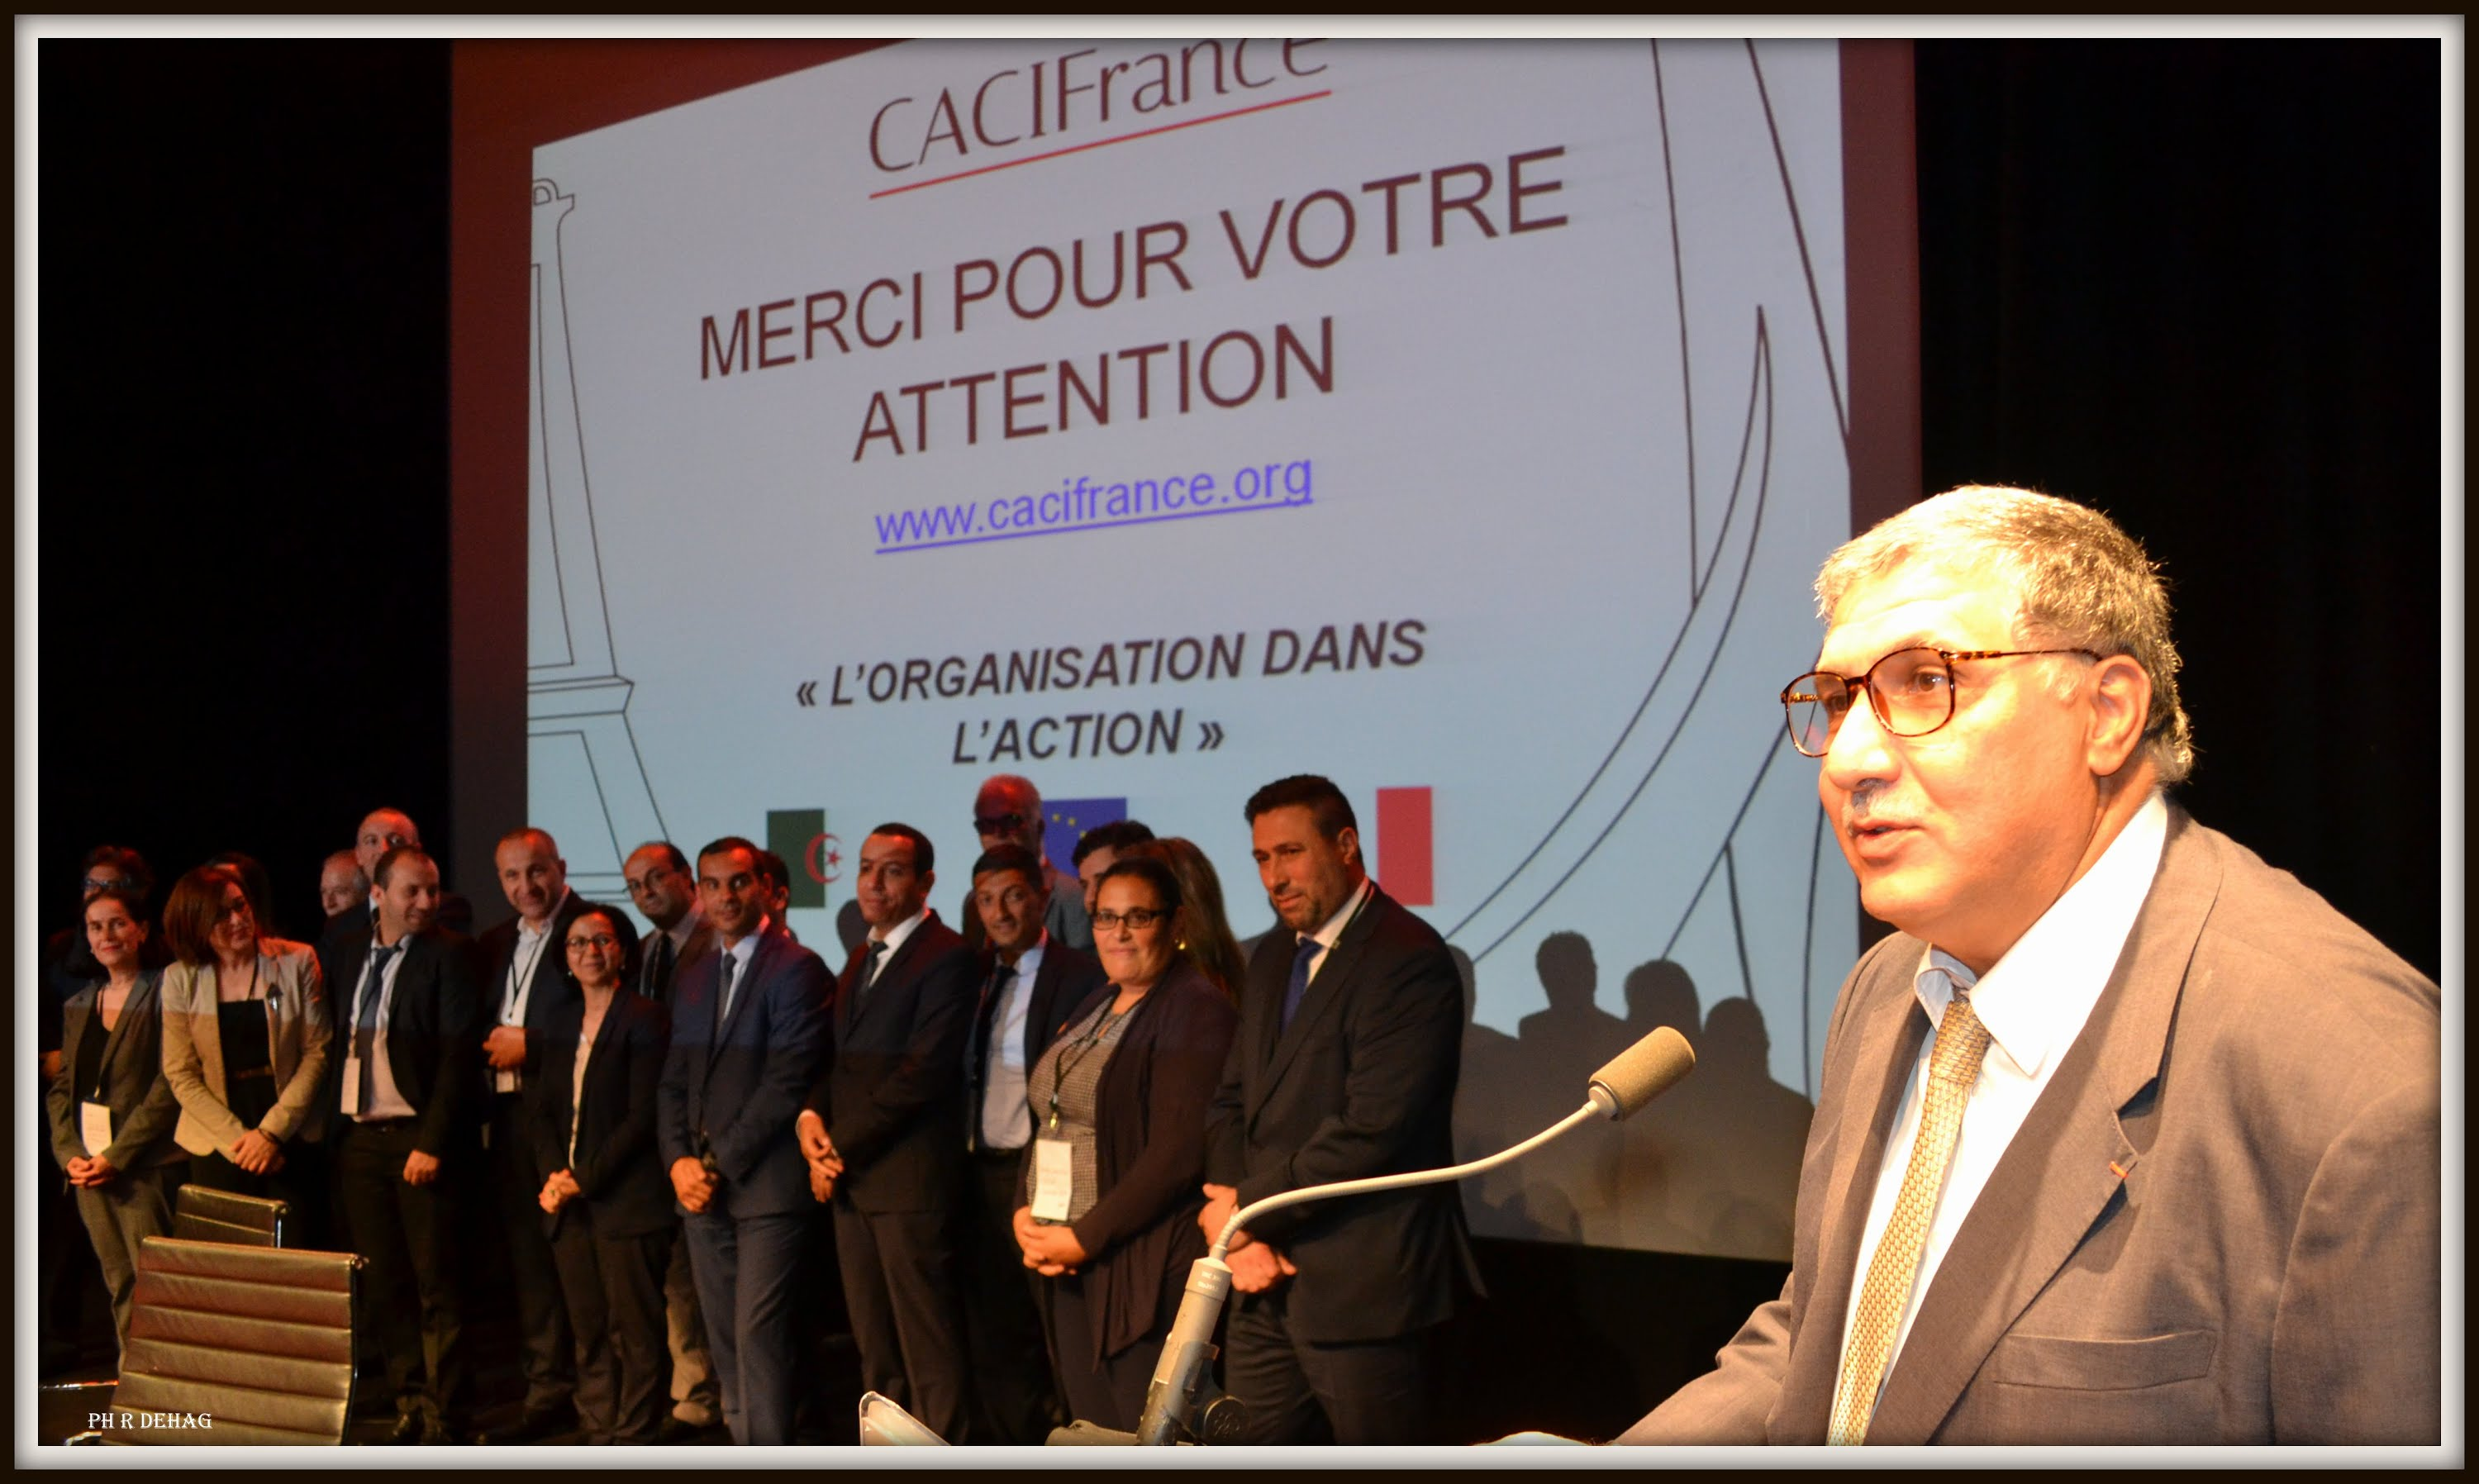 Caci france importante rencontre le 8 janvier paris for Chambre algerienne de commerce et d industrie